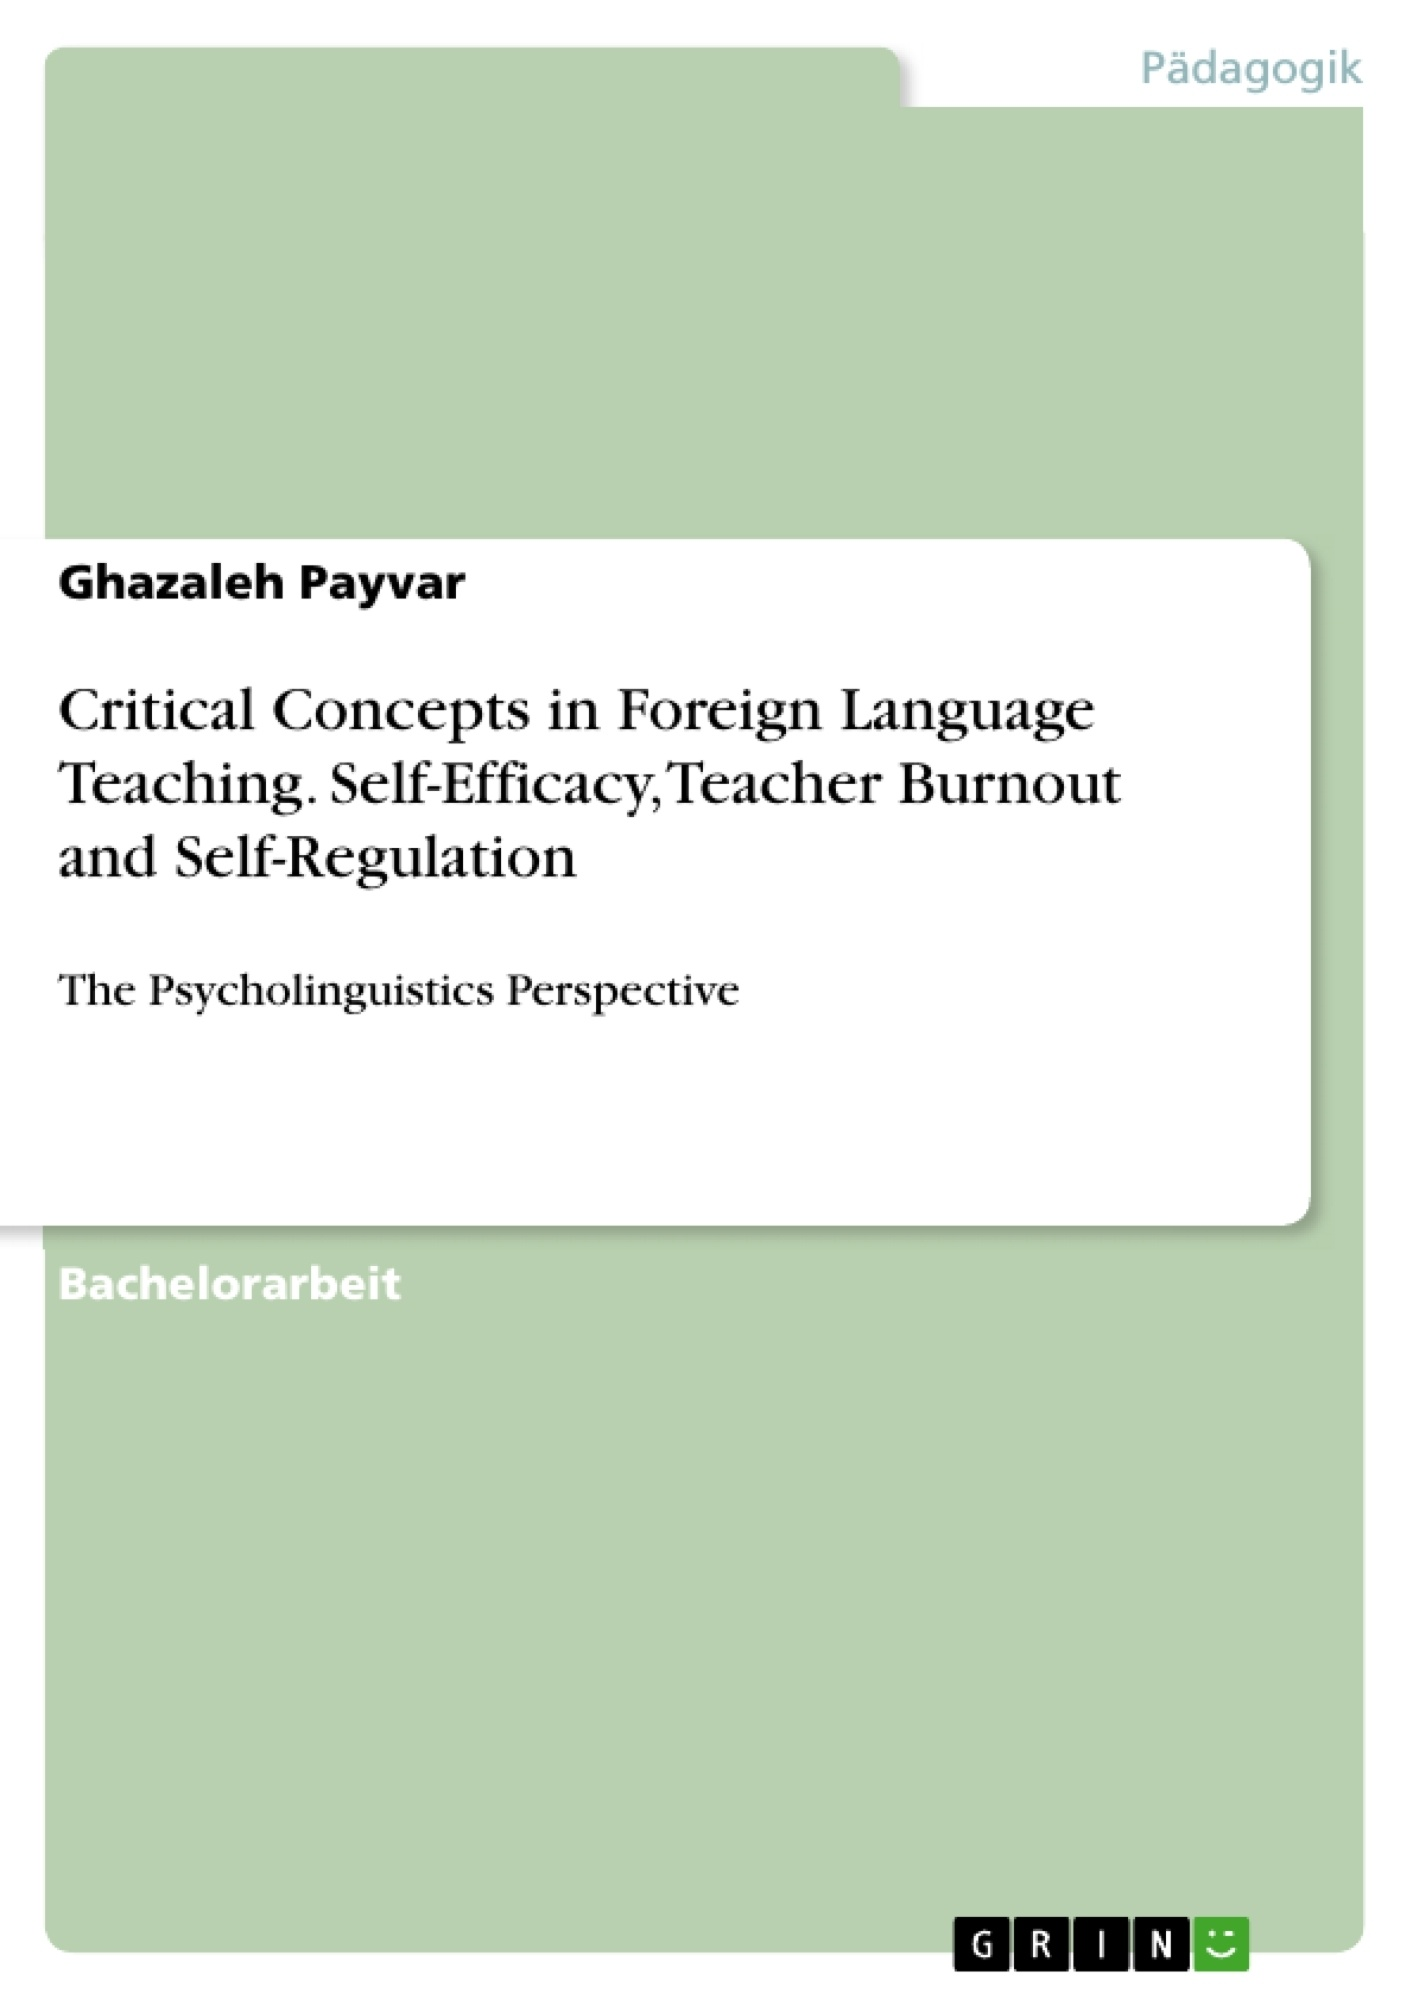 Titel: Critical Concepts in Foreign Language Teaching. Self-Efficacy, Teacher Burnout and Self-Regulation